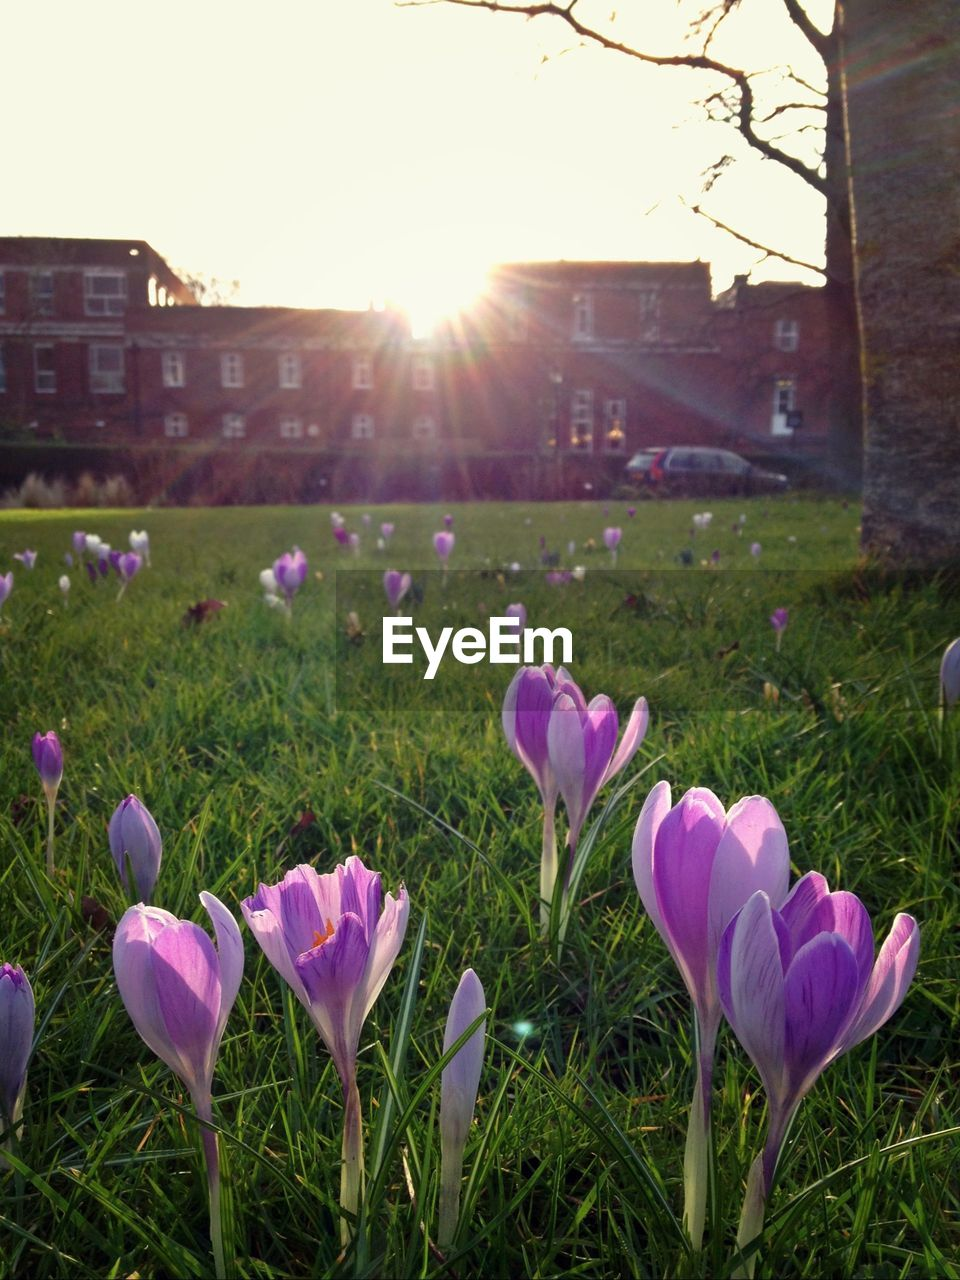 flower, lens flare, nature, beauty in nature, sunlight, sun, growth, petal, sunbeam, fragility, grass, no people, freshness, sunset, field, outdoors, plant, flower head, blooming, day, close-up, crocus, sky